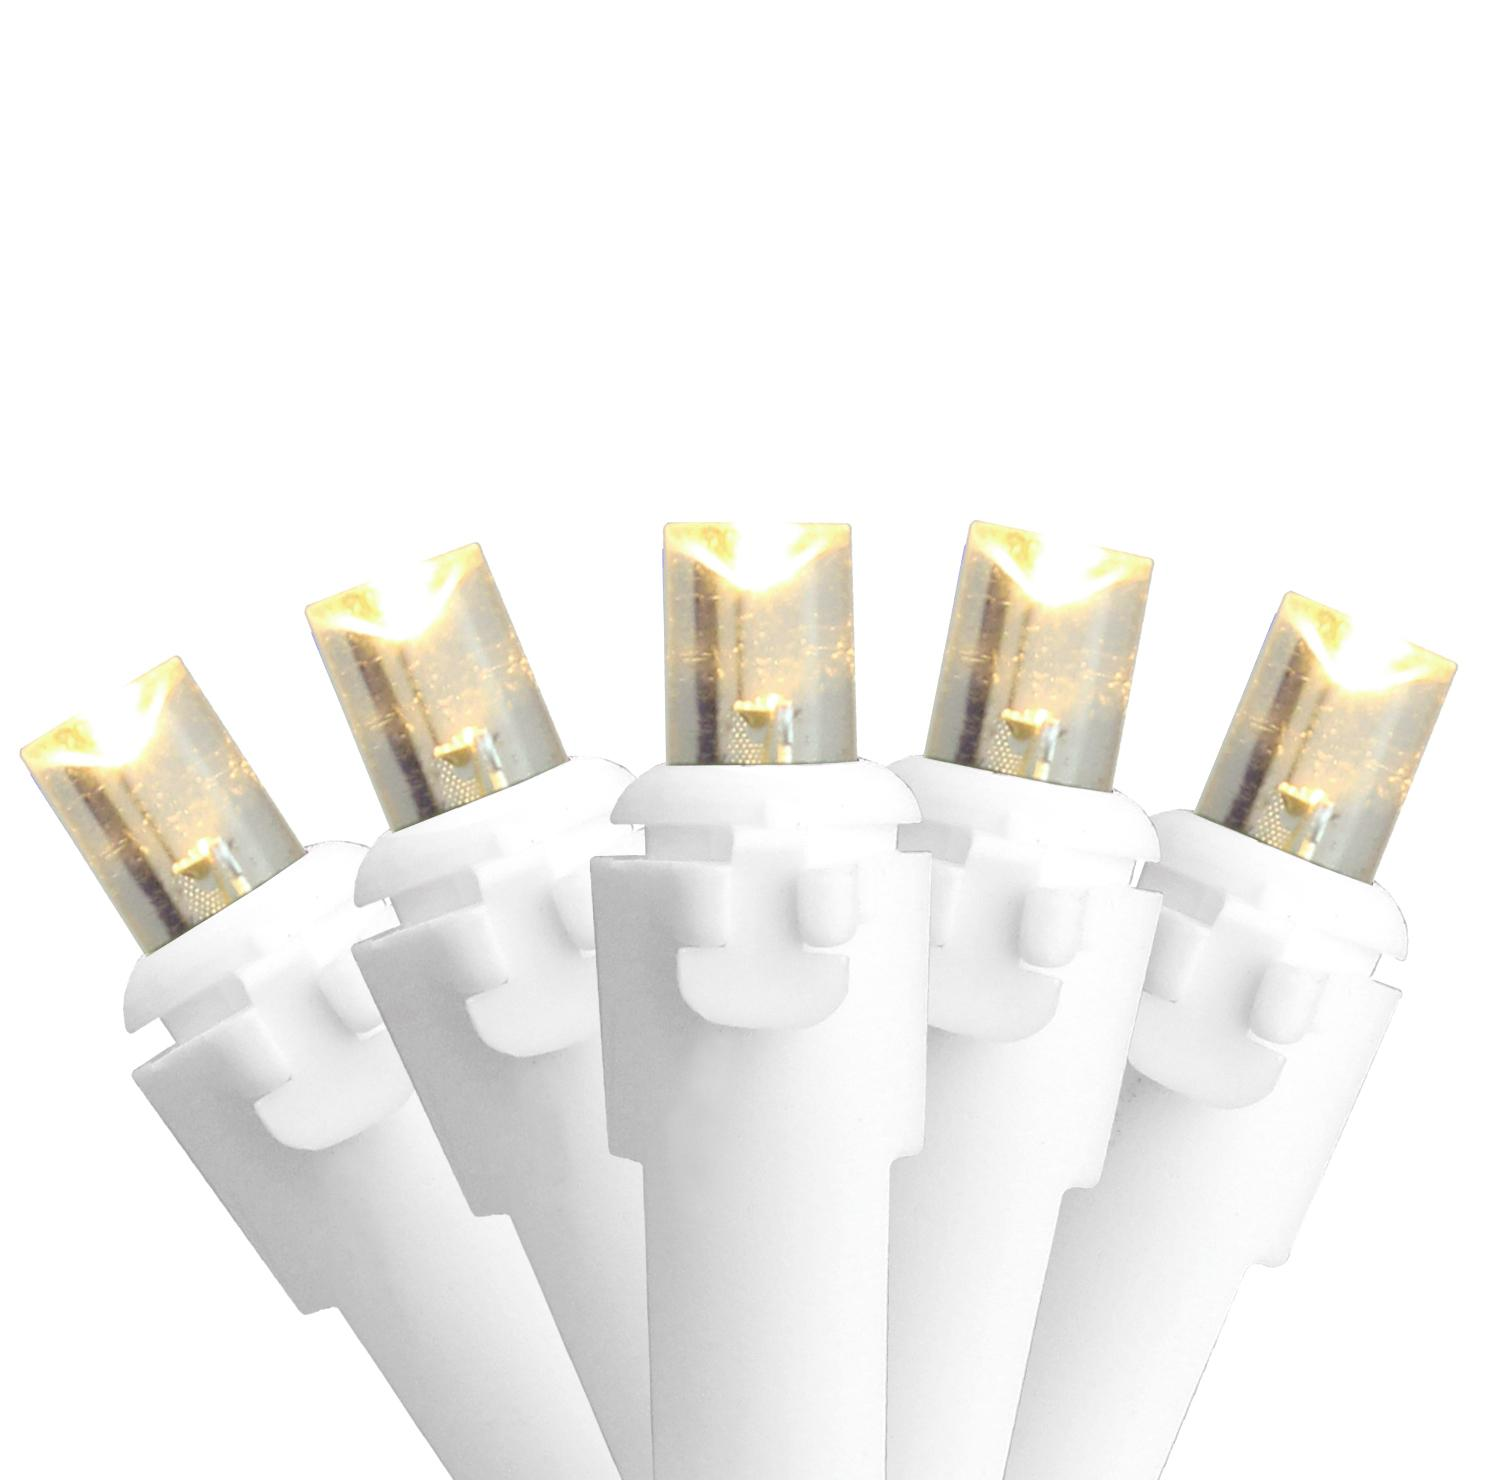 Set of 100 Warm White LED Wide Angle Christmas Lights - White Wire